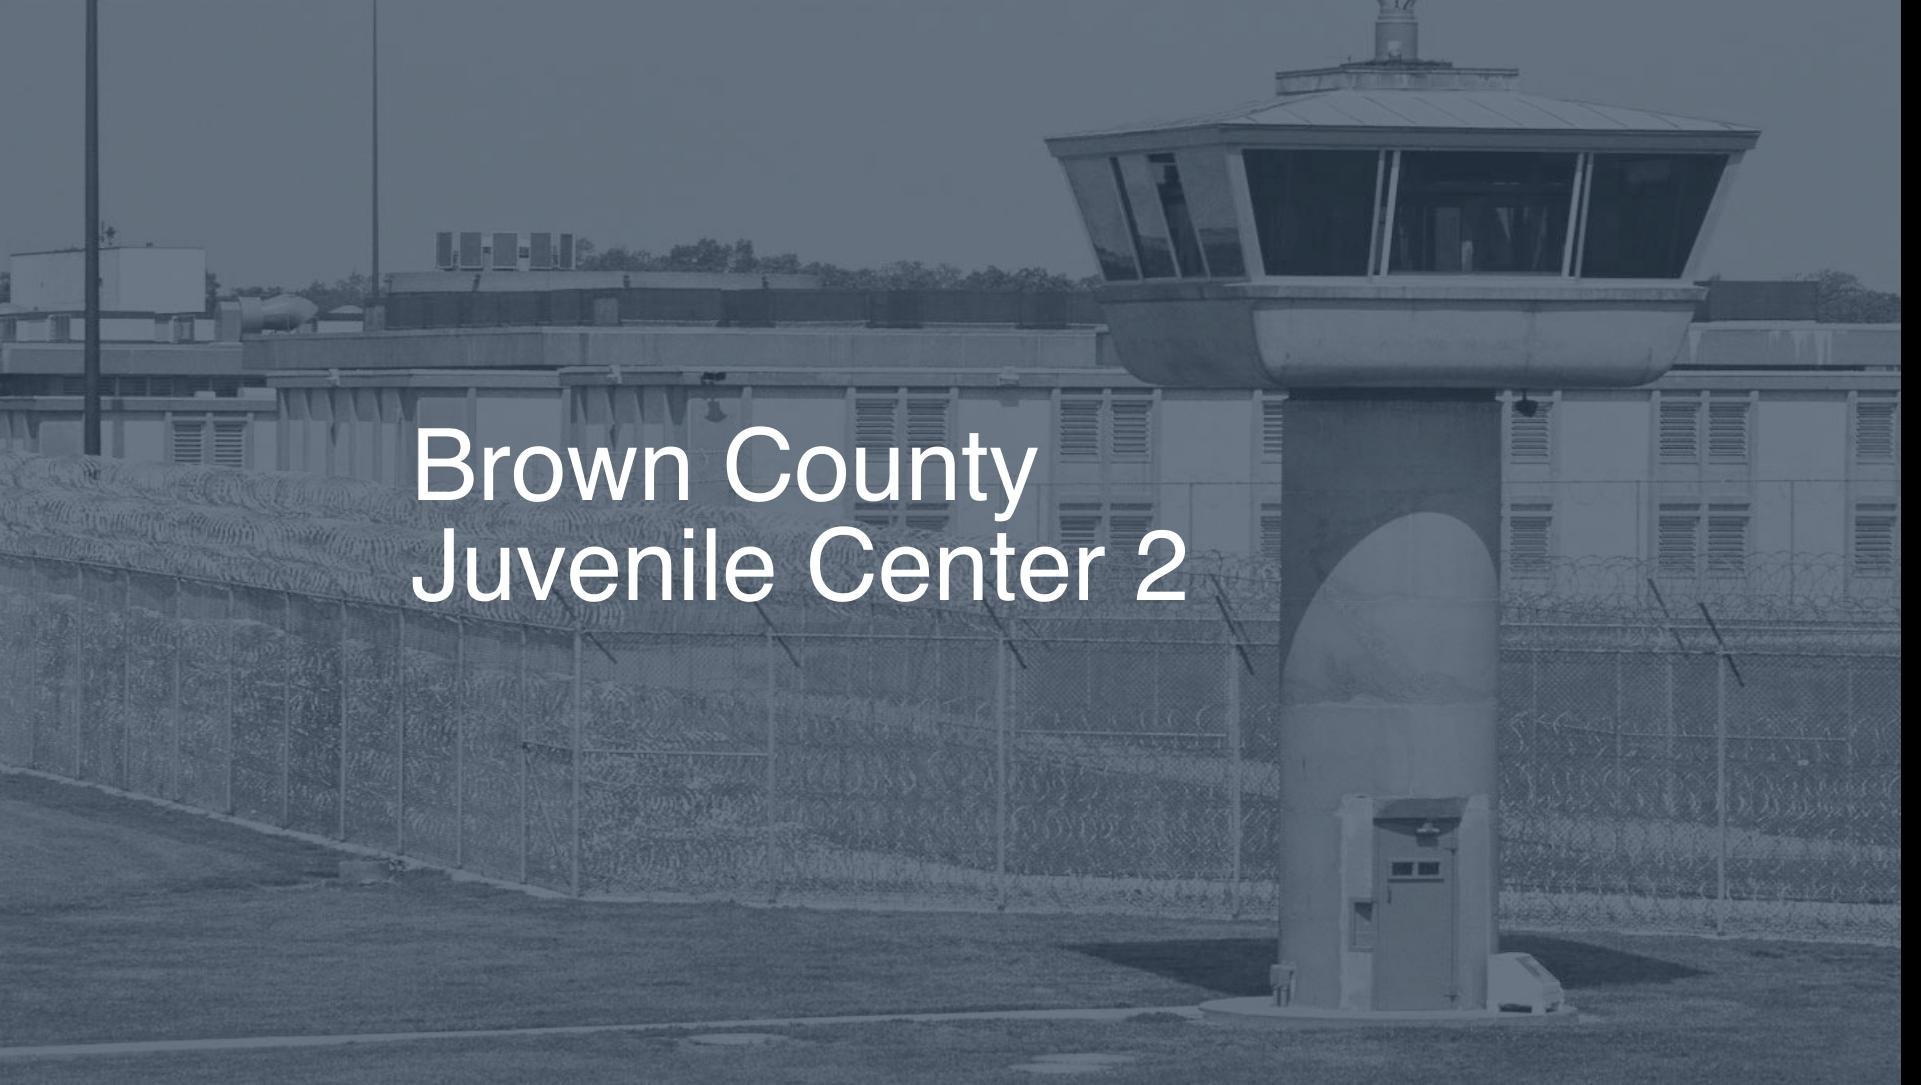 Brown County Juvenile Center correctional facility picture